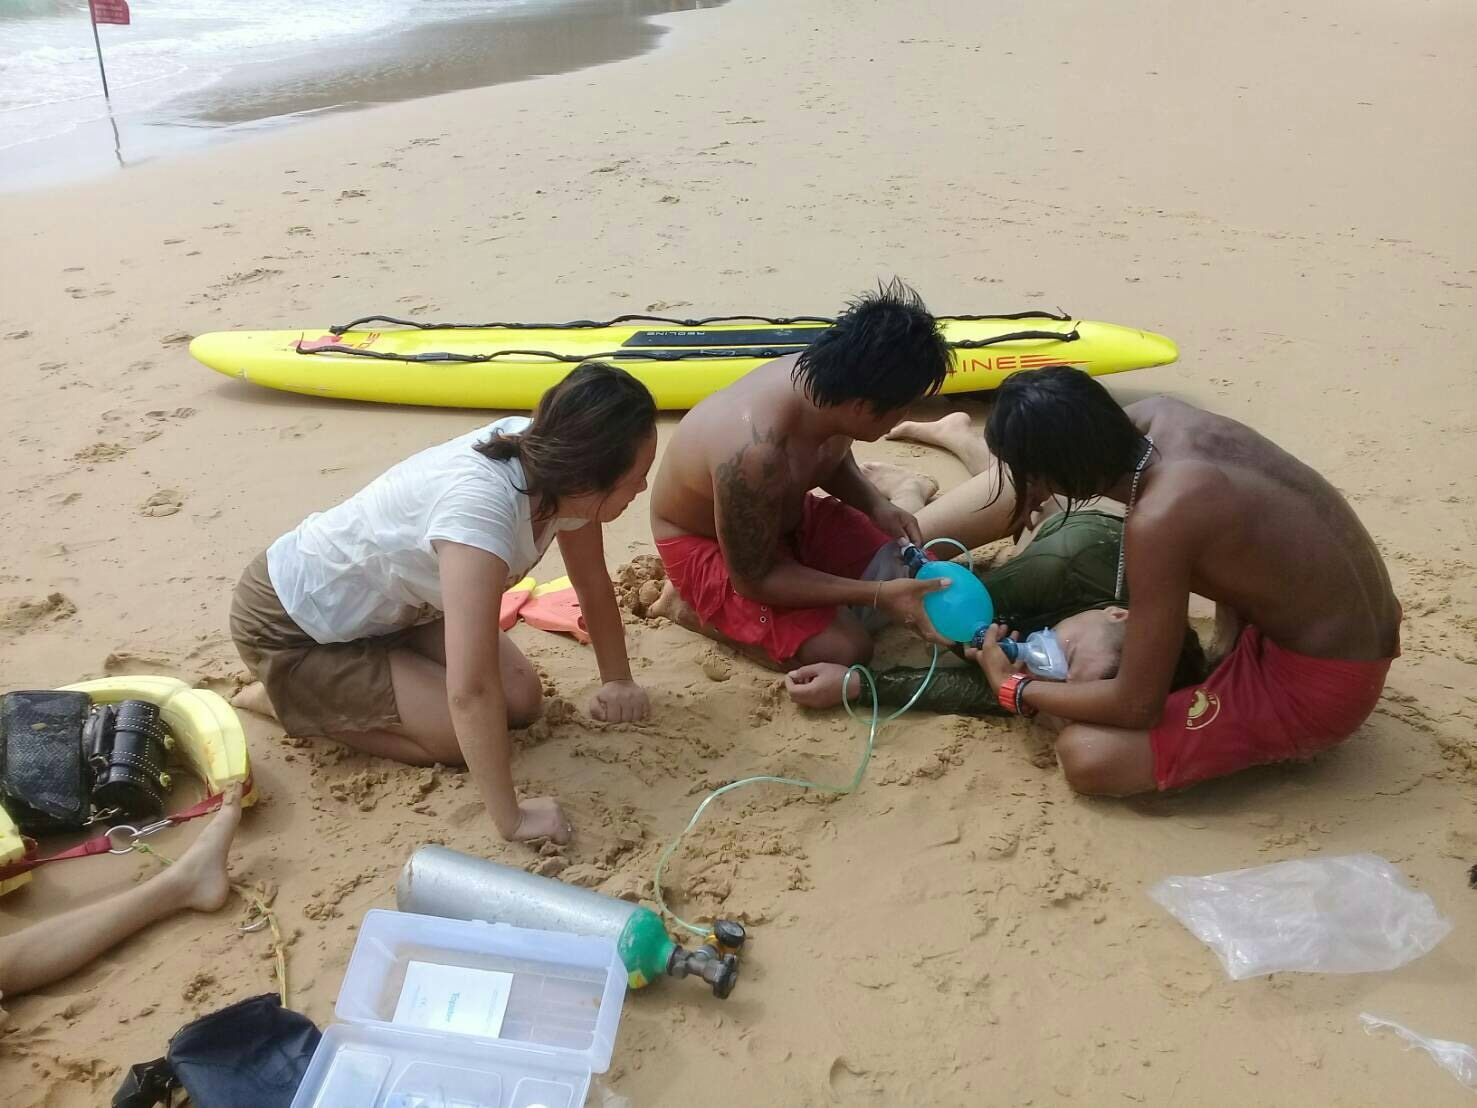 Chinese tourists get in trouble in strong Nai Thon surf | The Thaiger